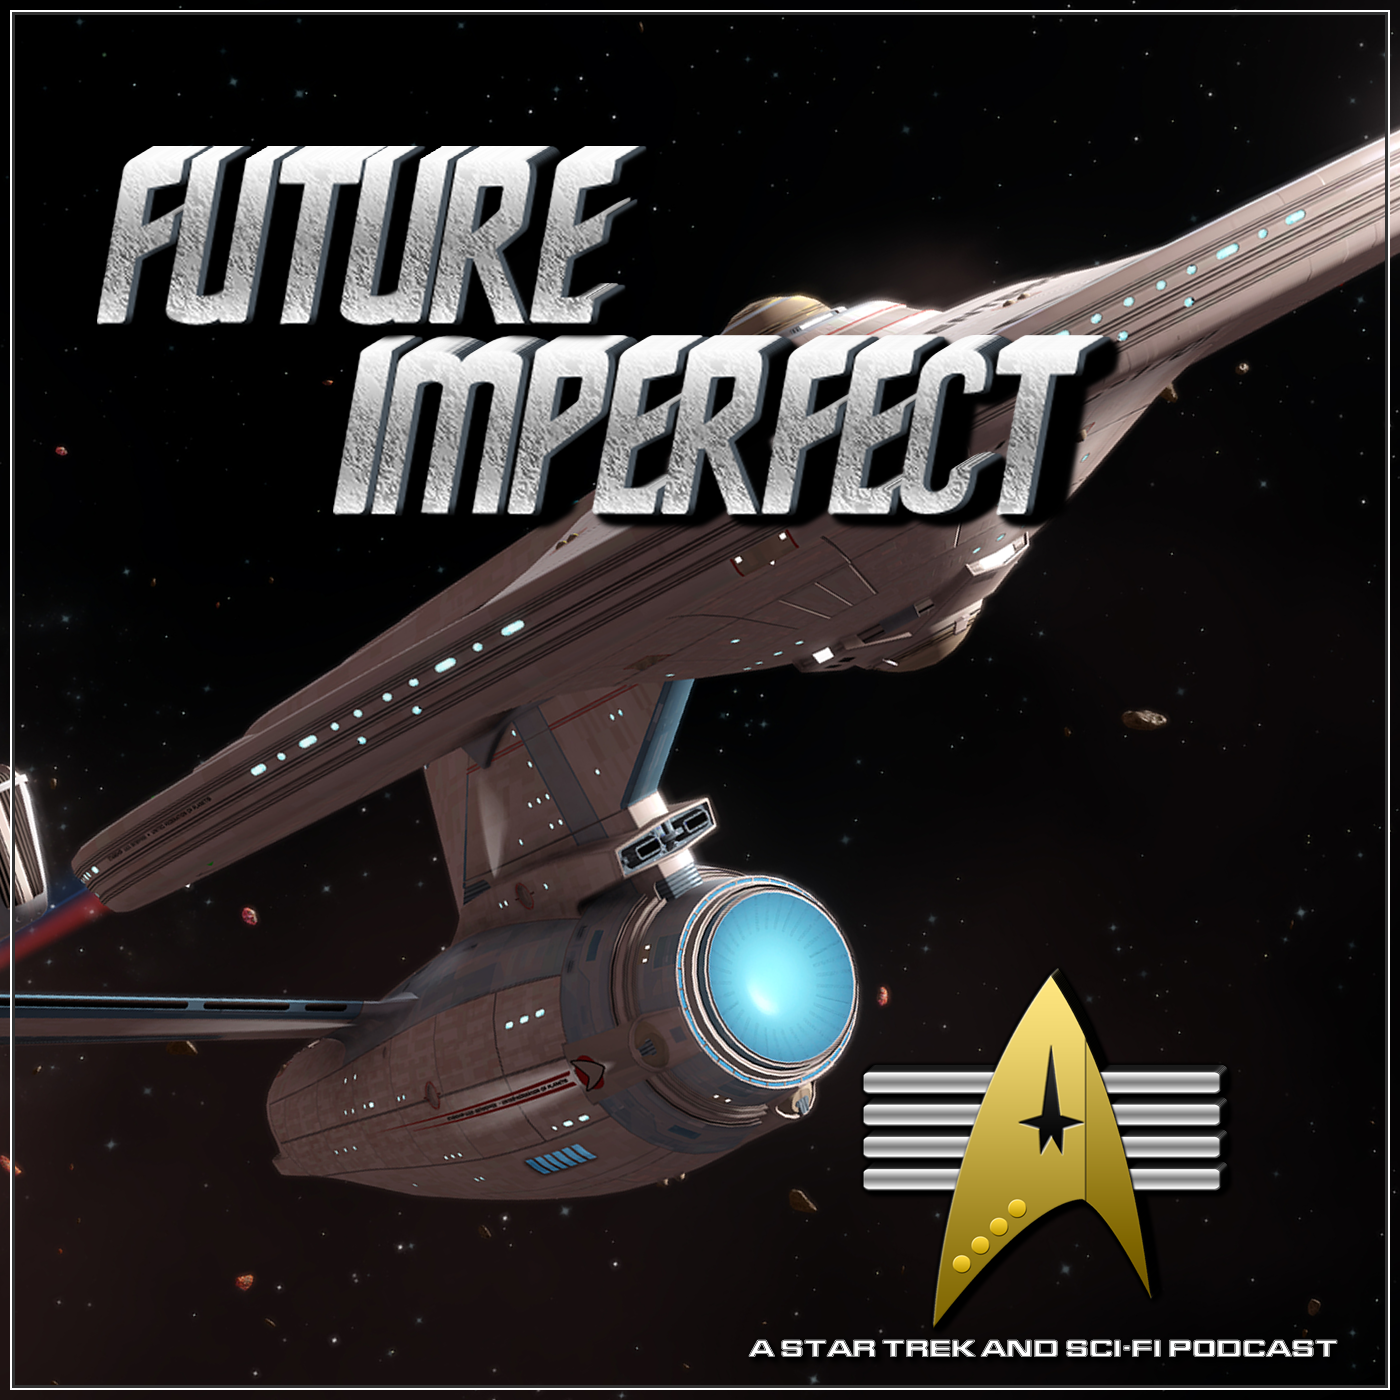 USS Future Imperfect